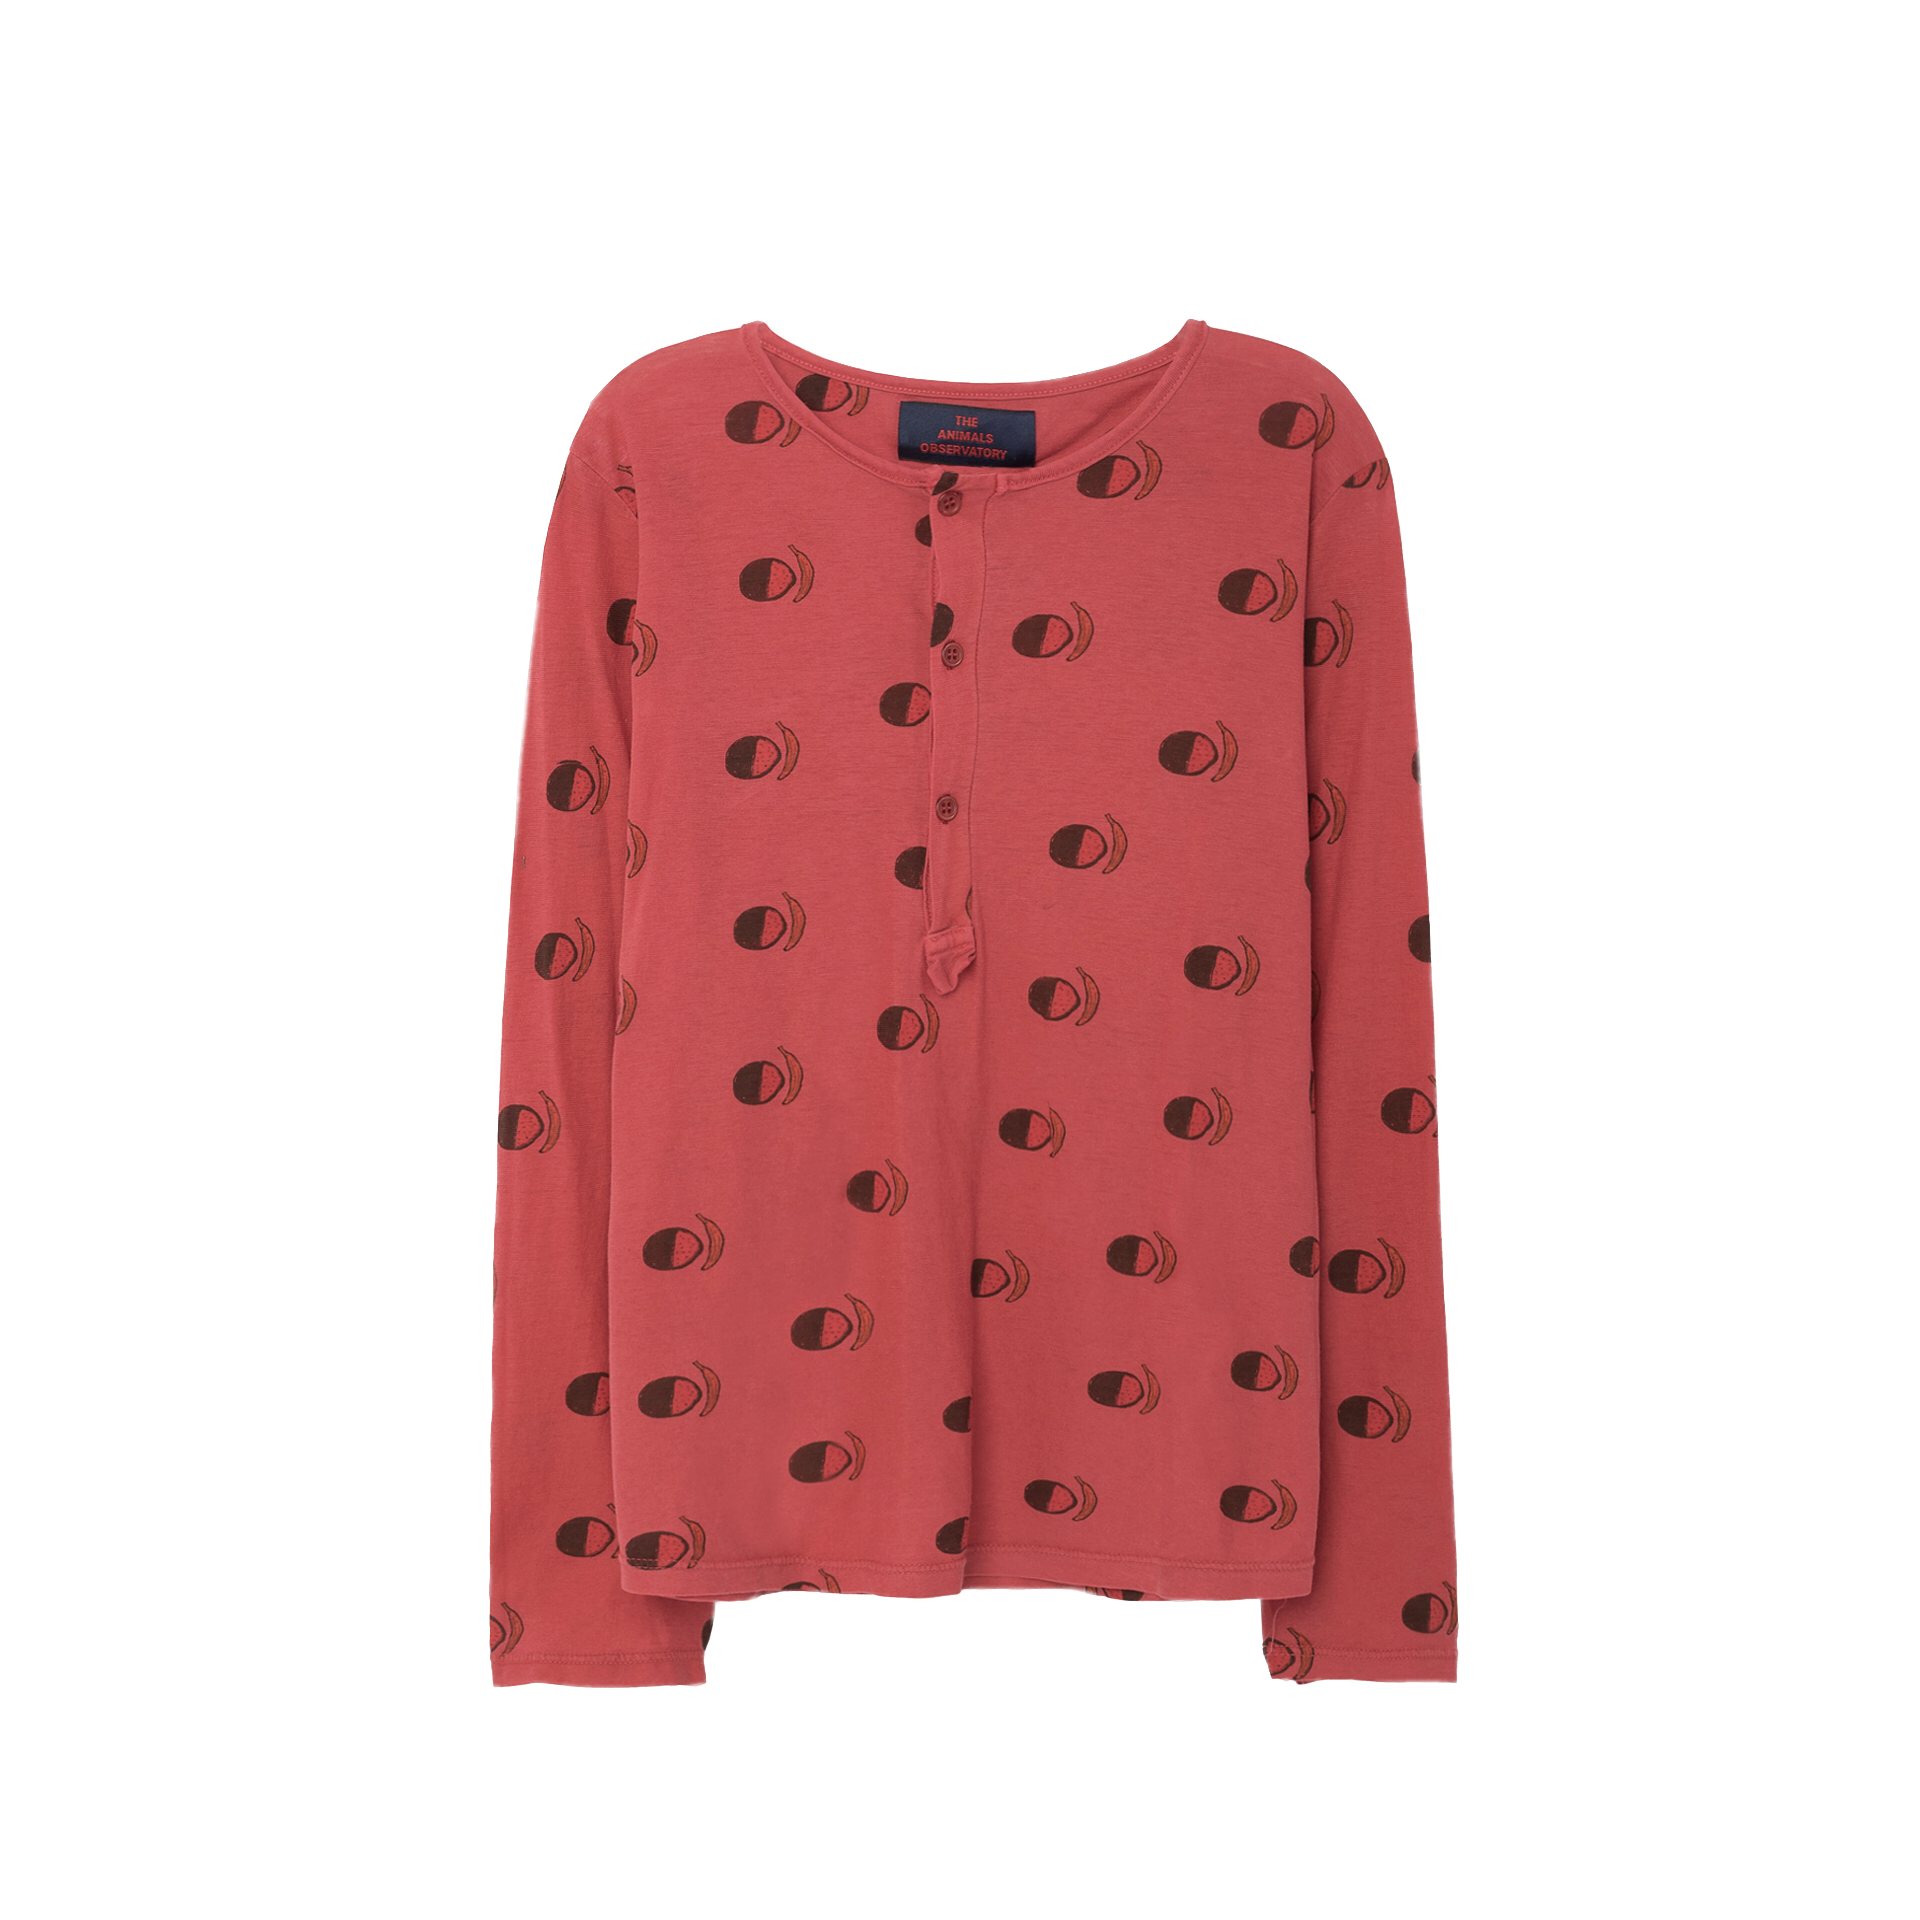 The Animals Observatory Deer Kid's T-Shirt in Maroon Fruit | BIEN BIEN